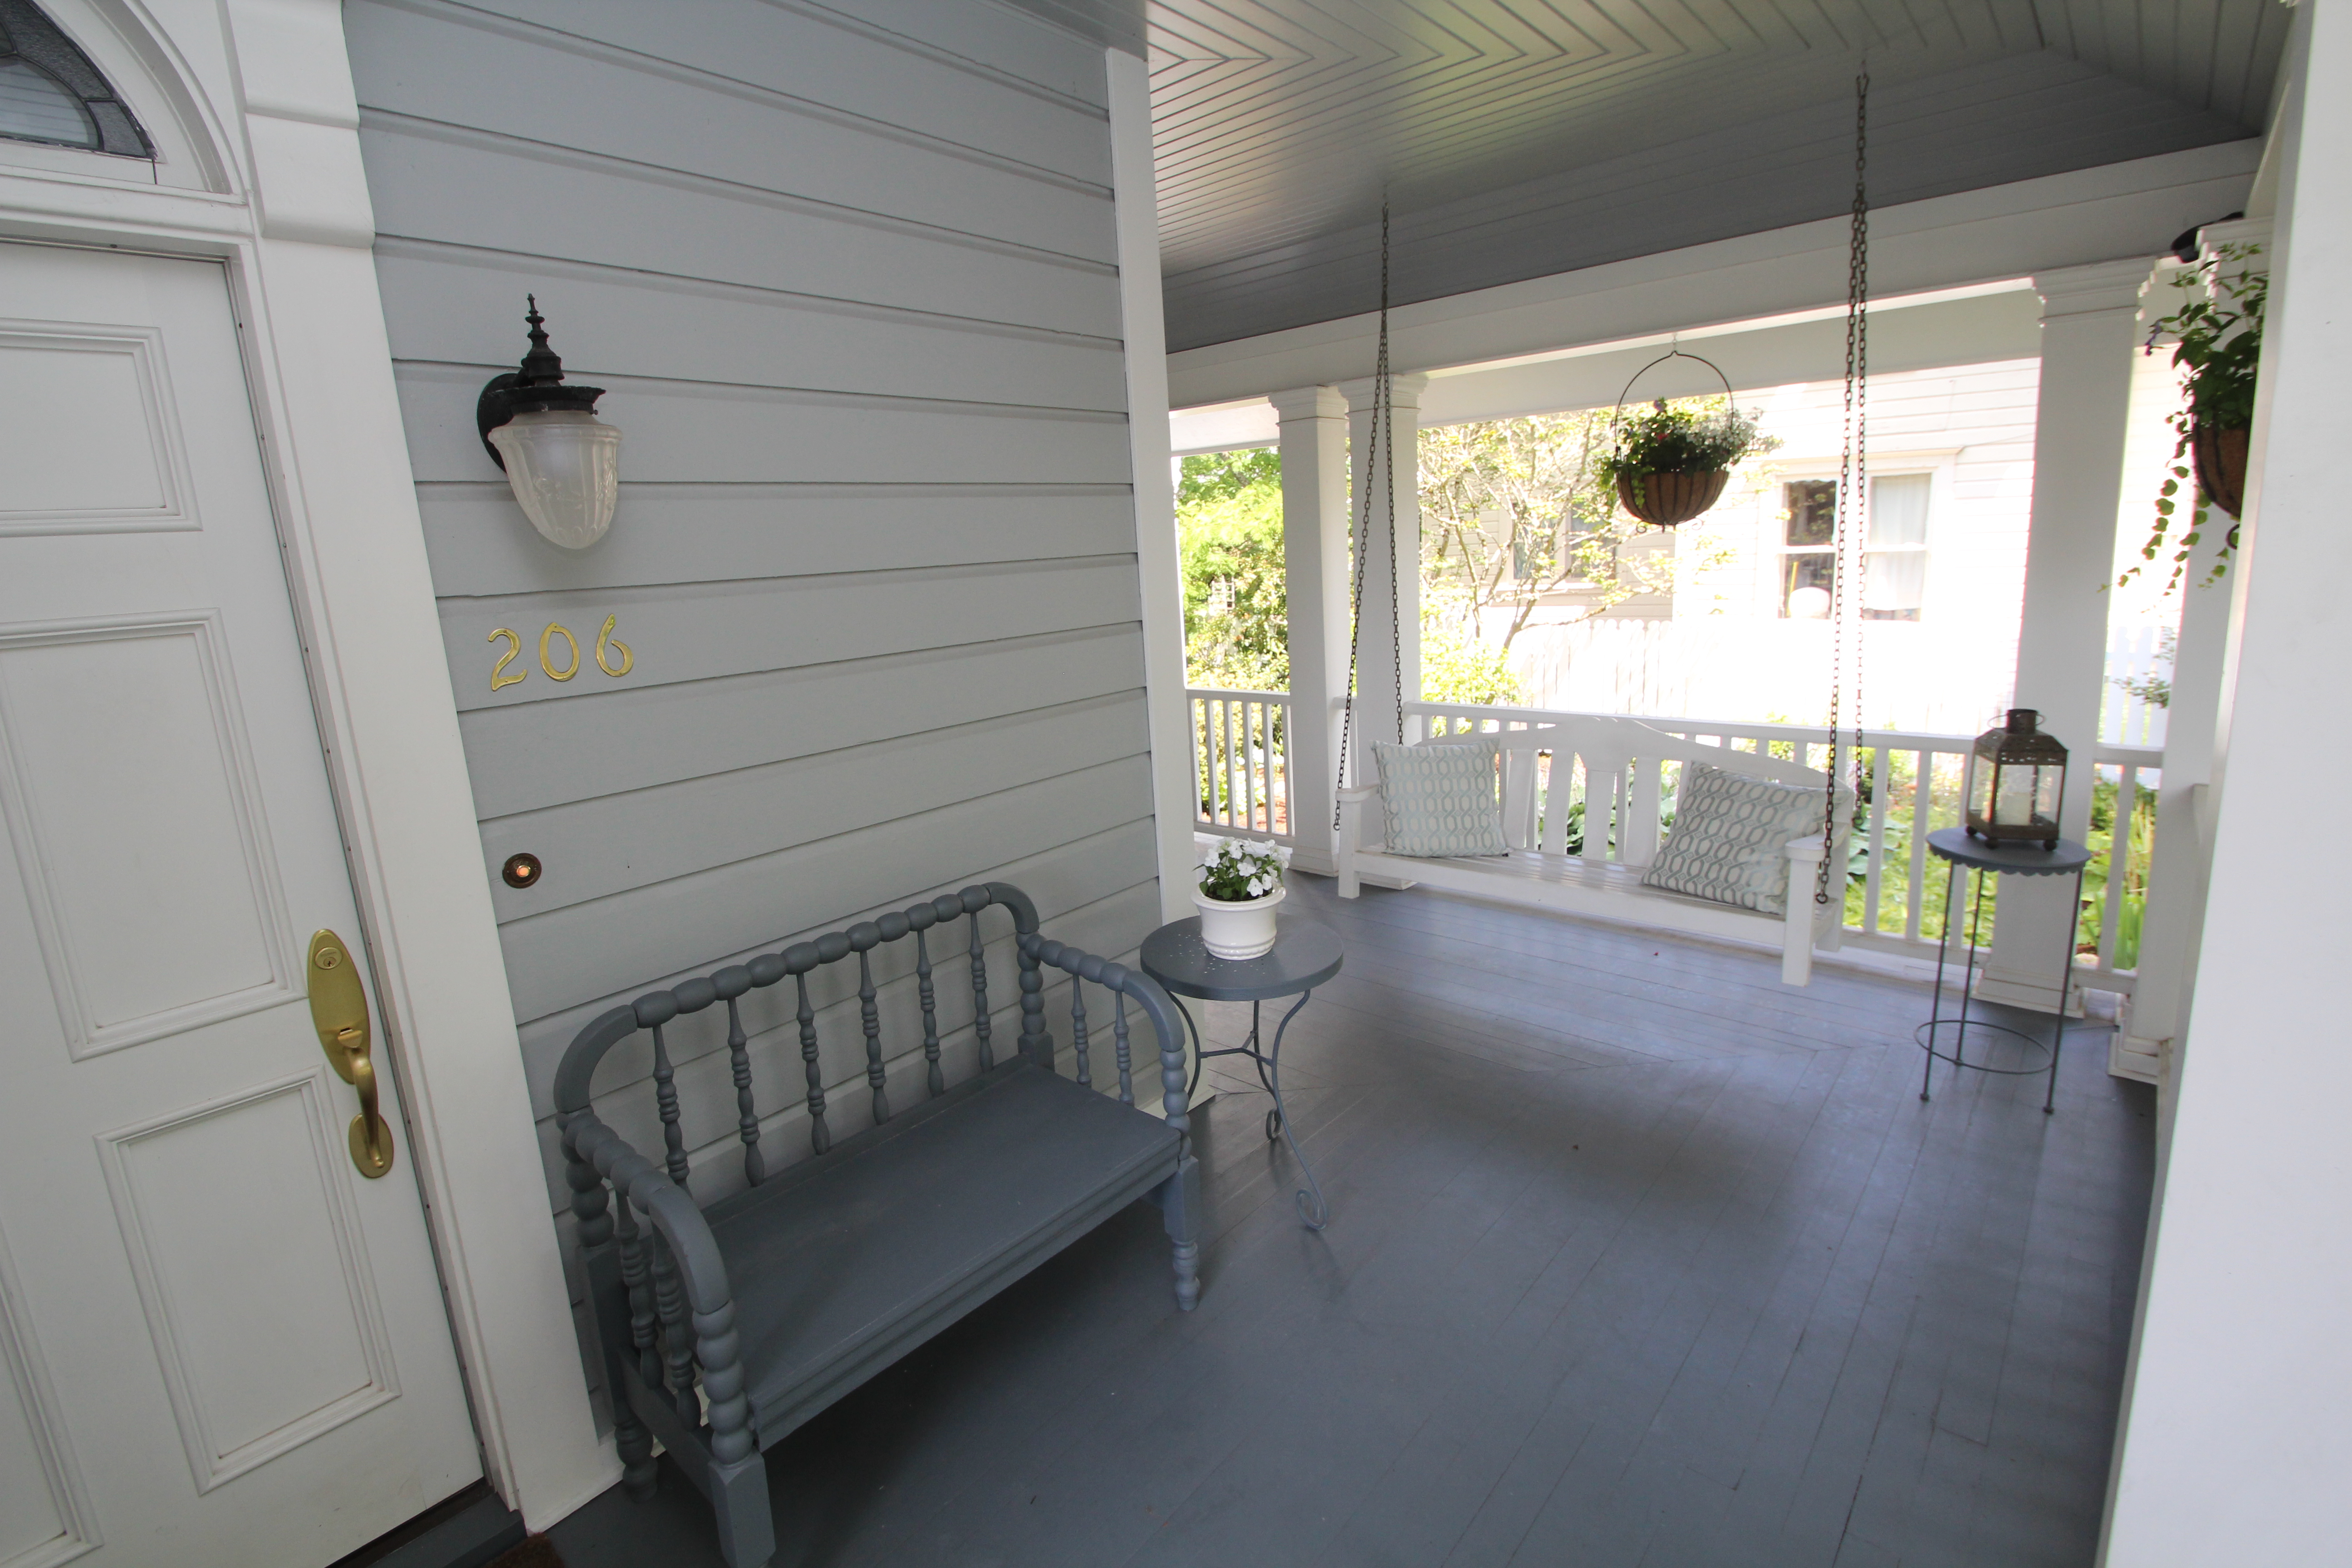 206 NW 8th Street, Corvallis, Oregon 97330-Front Porch Swing